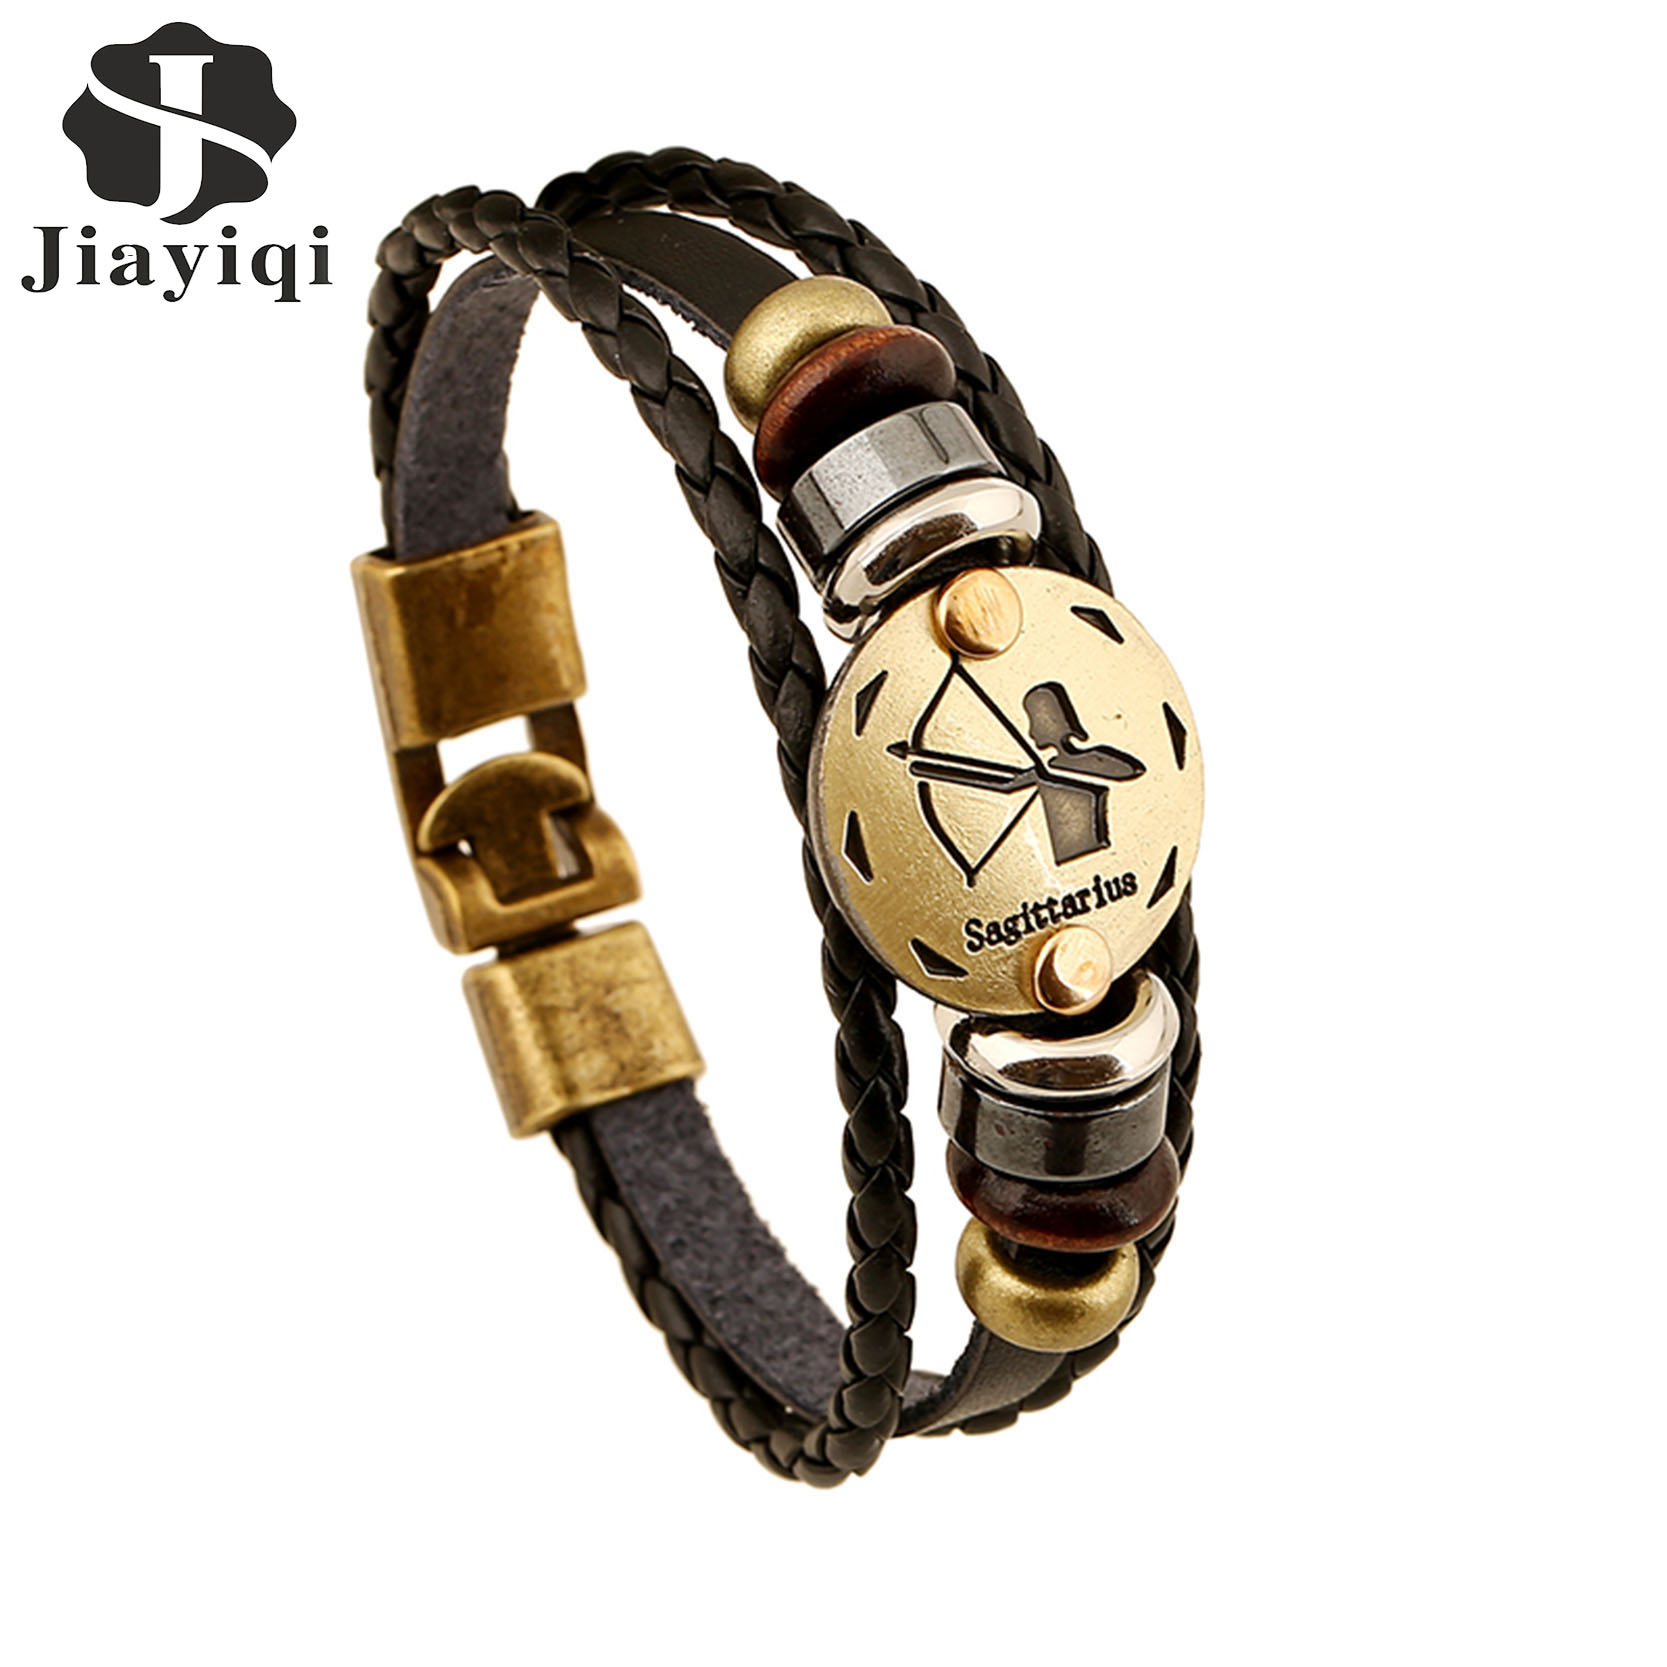 versona bracelet jewellery l jewelry inspirational leather item default